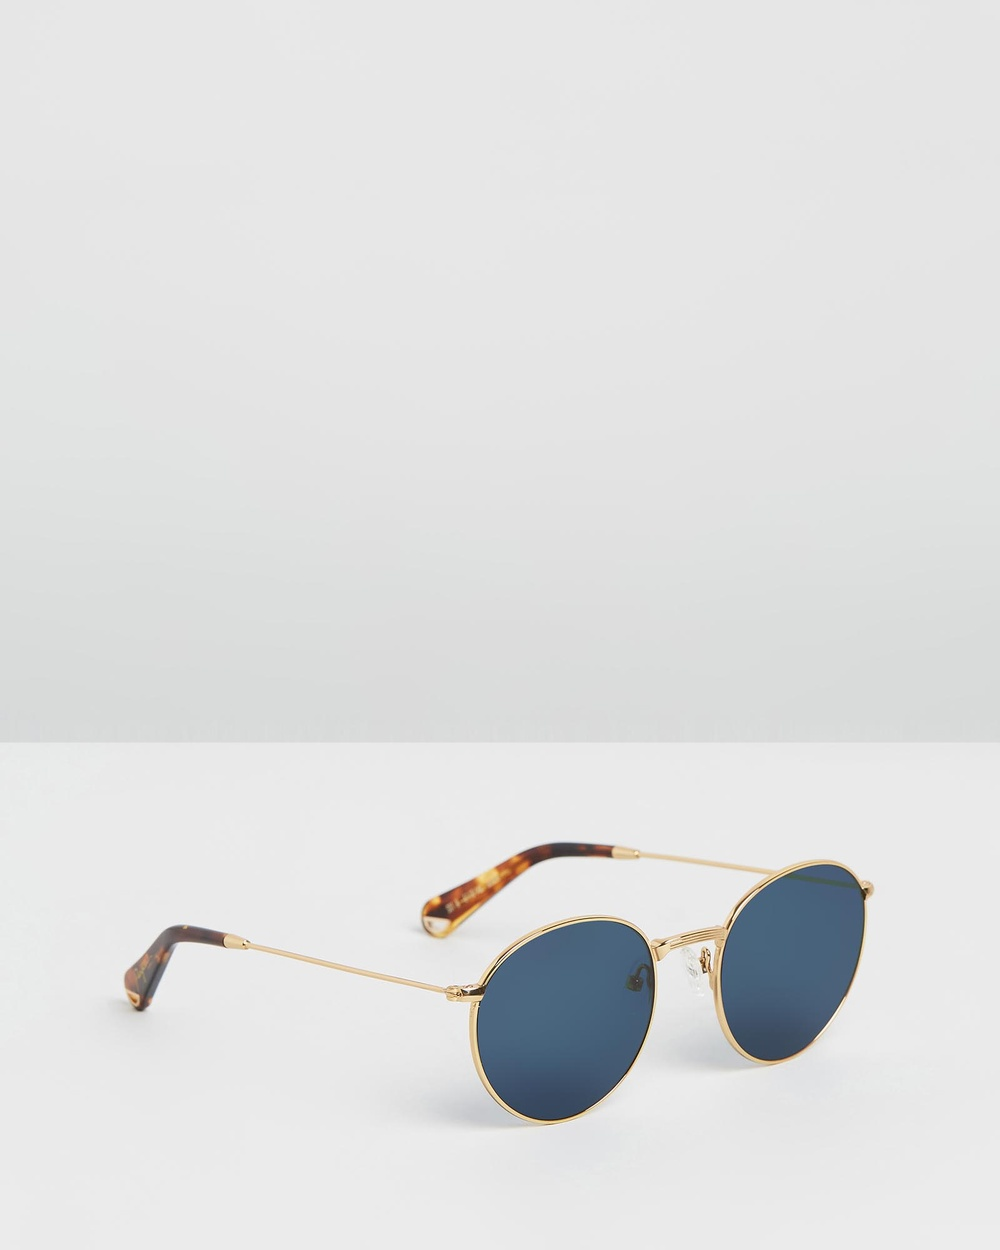 Pacifico Optical Dover Sunglasses Vintage Gold with Polarised Blue lens